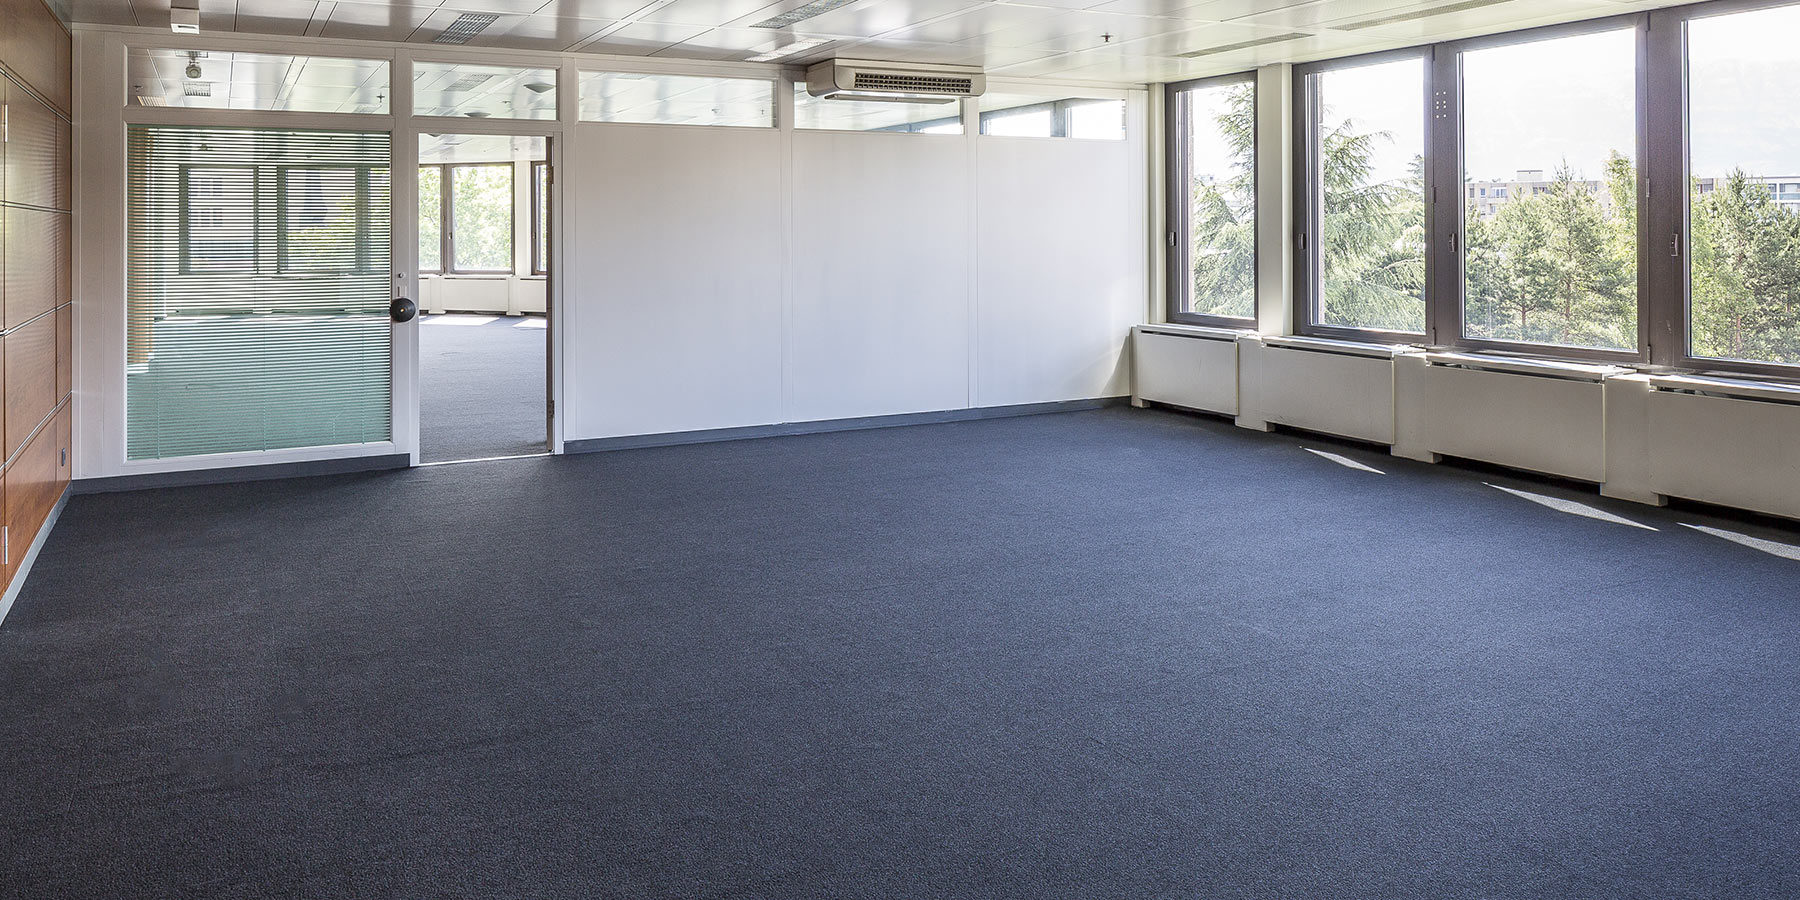 4th Floor Office Space Available 113 Sq M Geneva